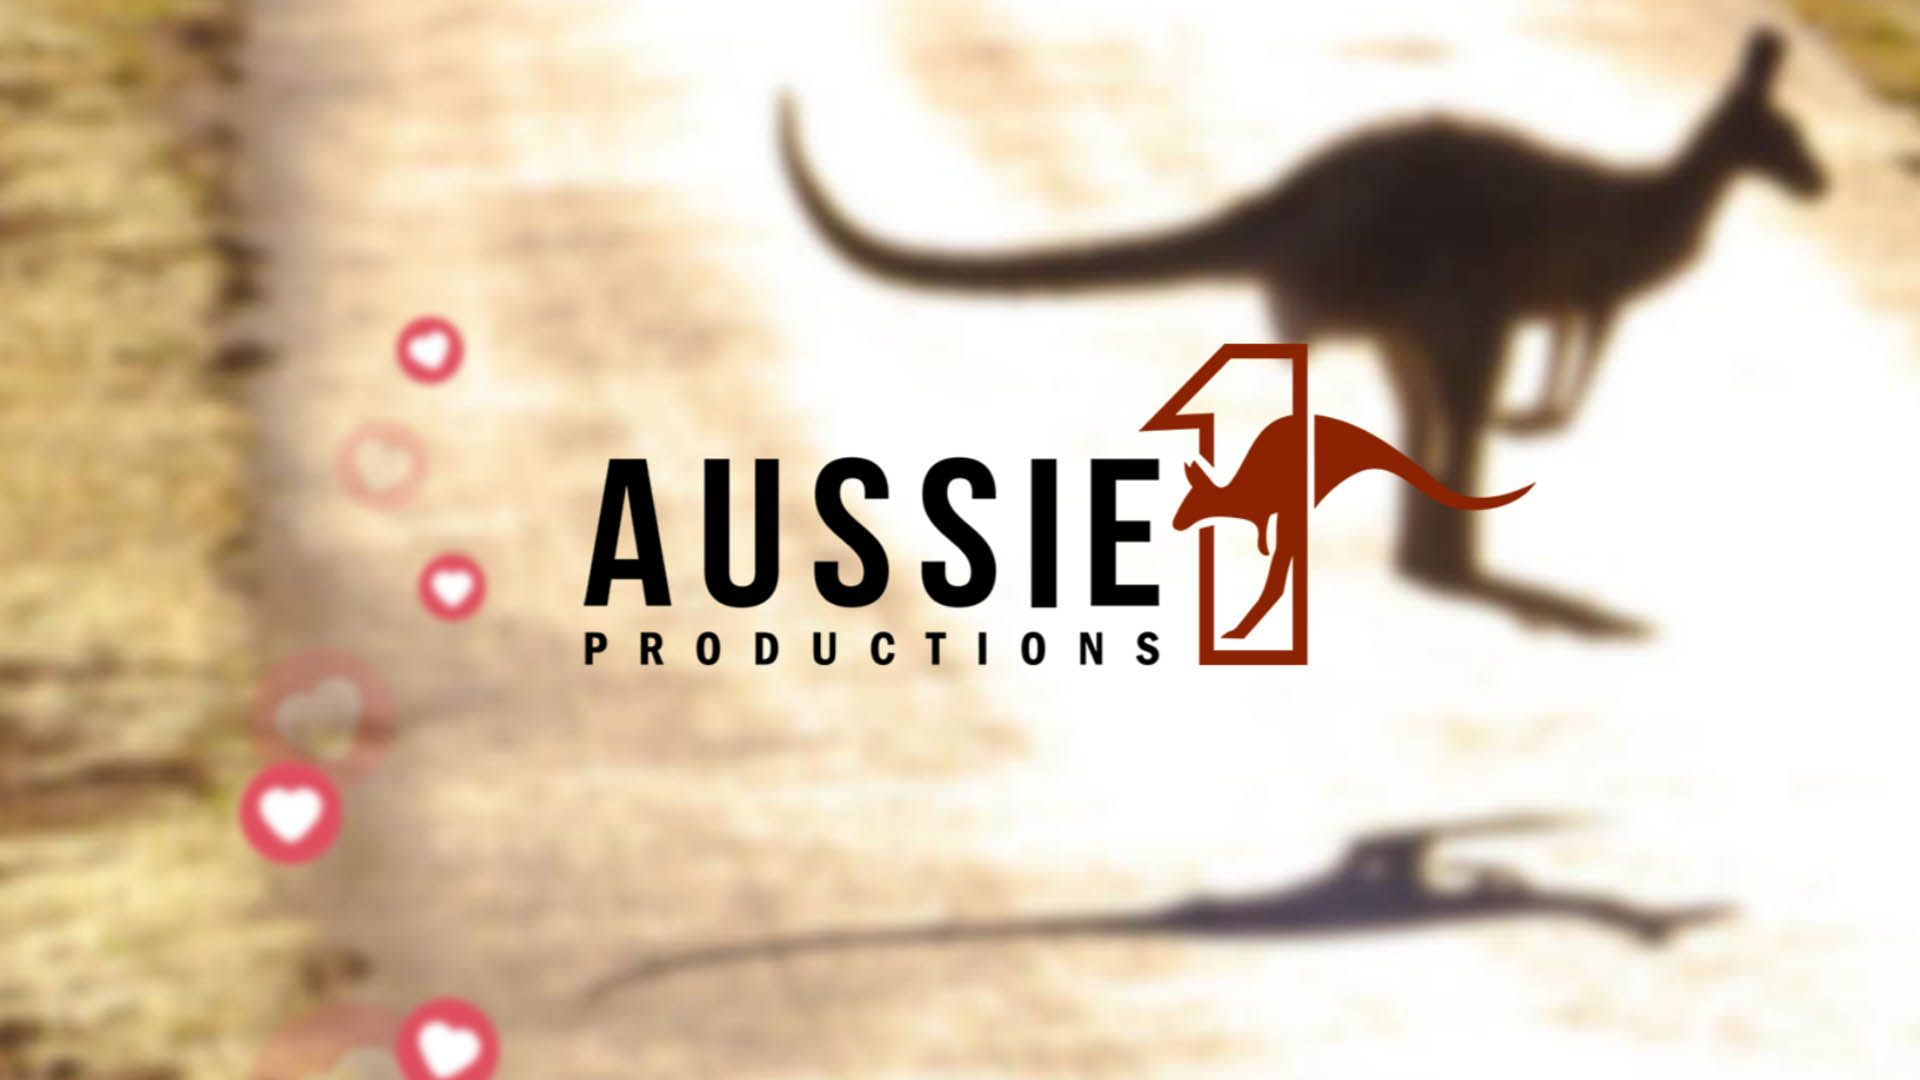 Homepage Aussie 1 Productions Before After Slider for Aussie 1 and AMCCU Projects Stand Behind AMTV Show